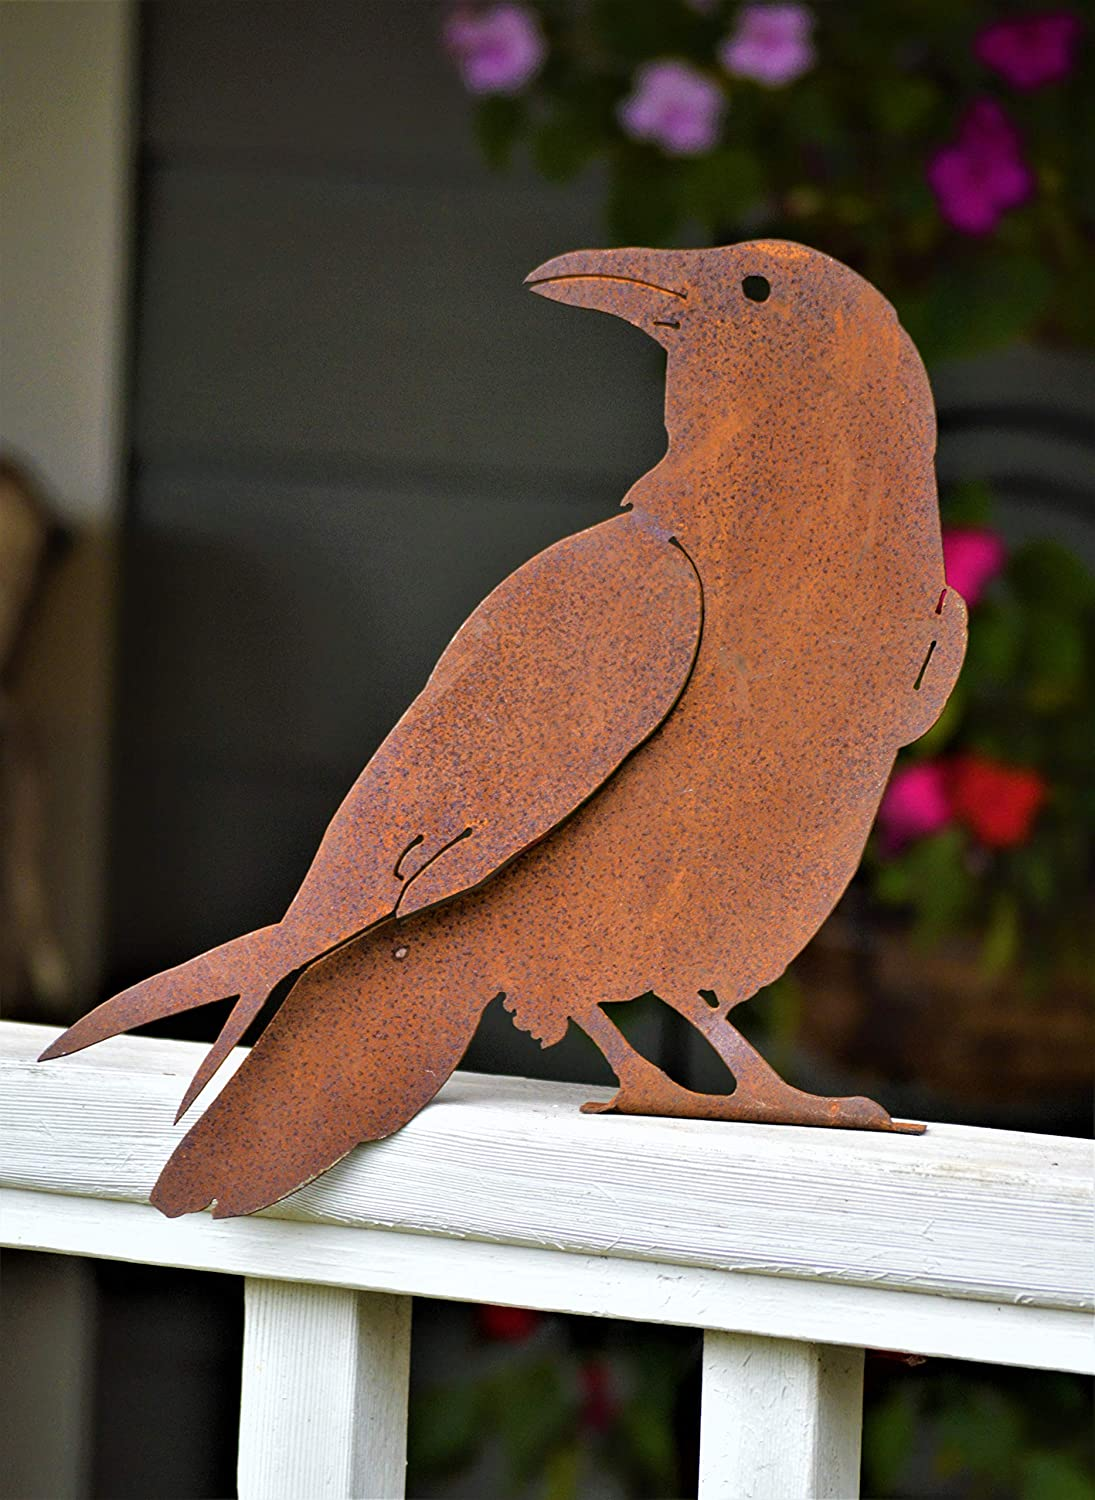 Elegant Garden Design Quoth The Raven, Steel Silhouette with a Rusty Patina